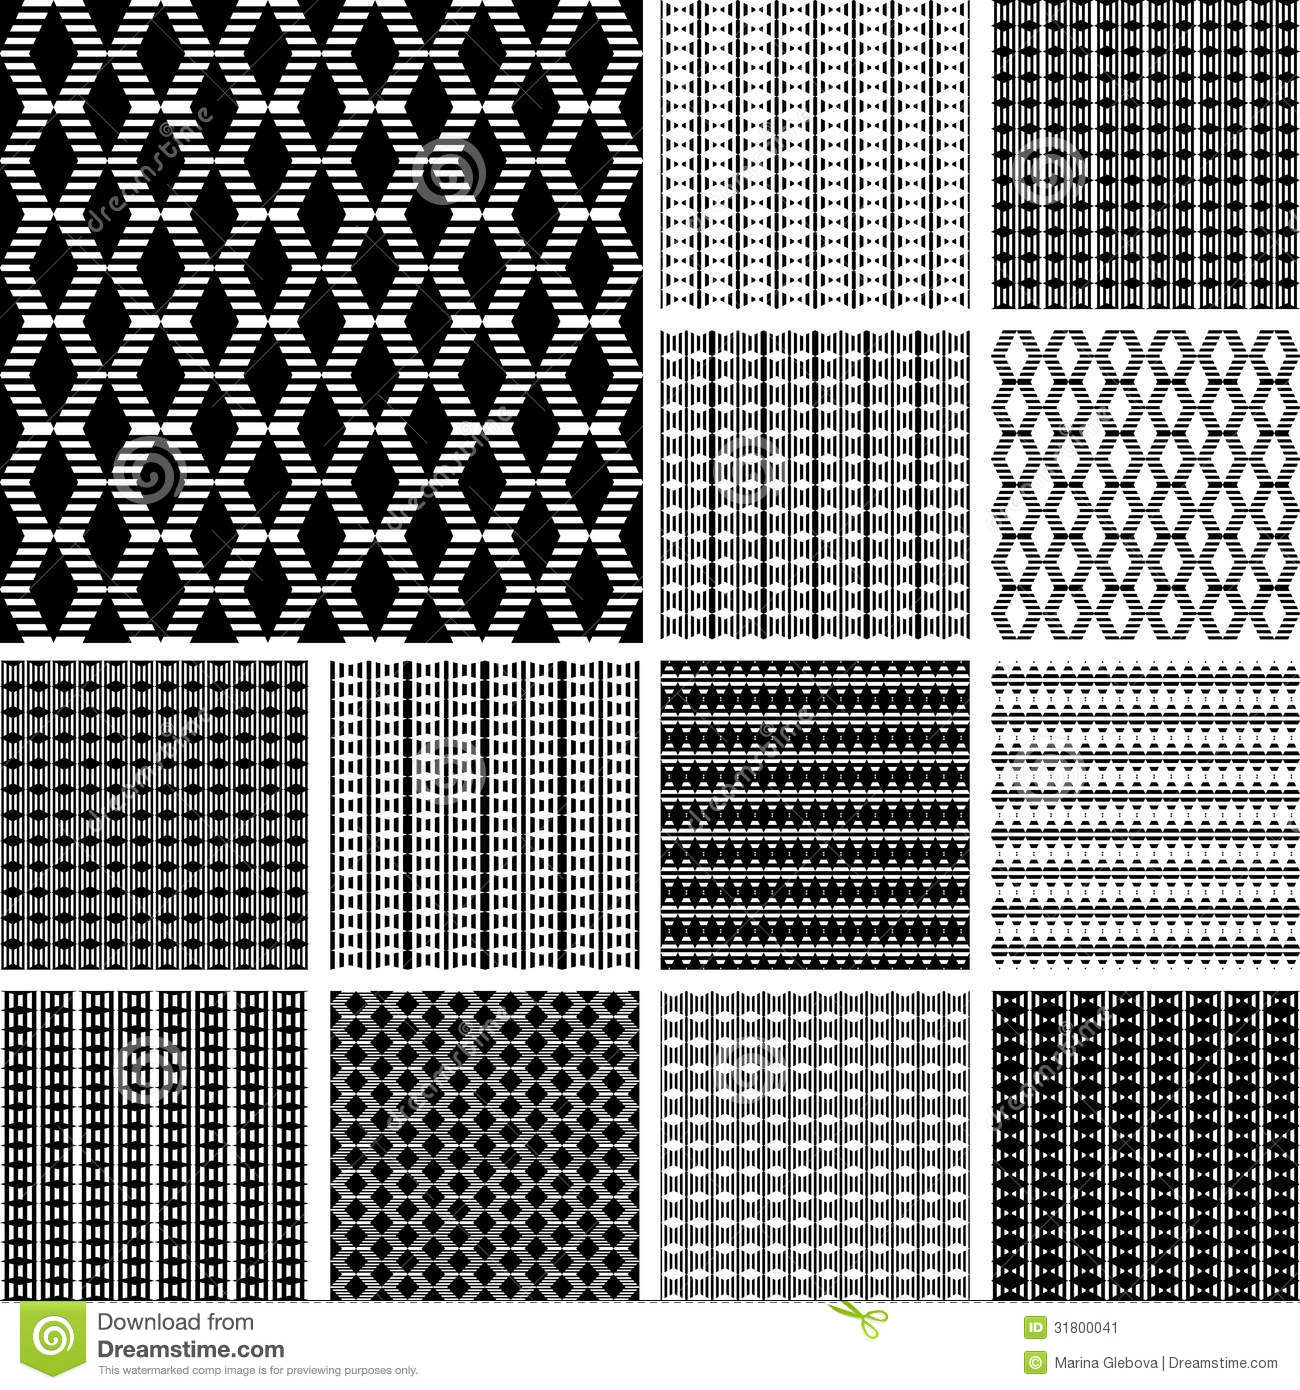 Elements Of Art Pattern : Striped textures with diamond elements stock image